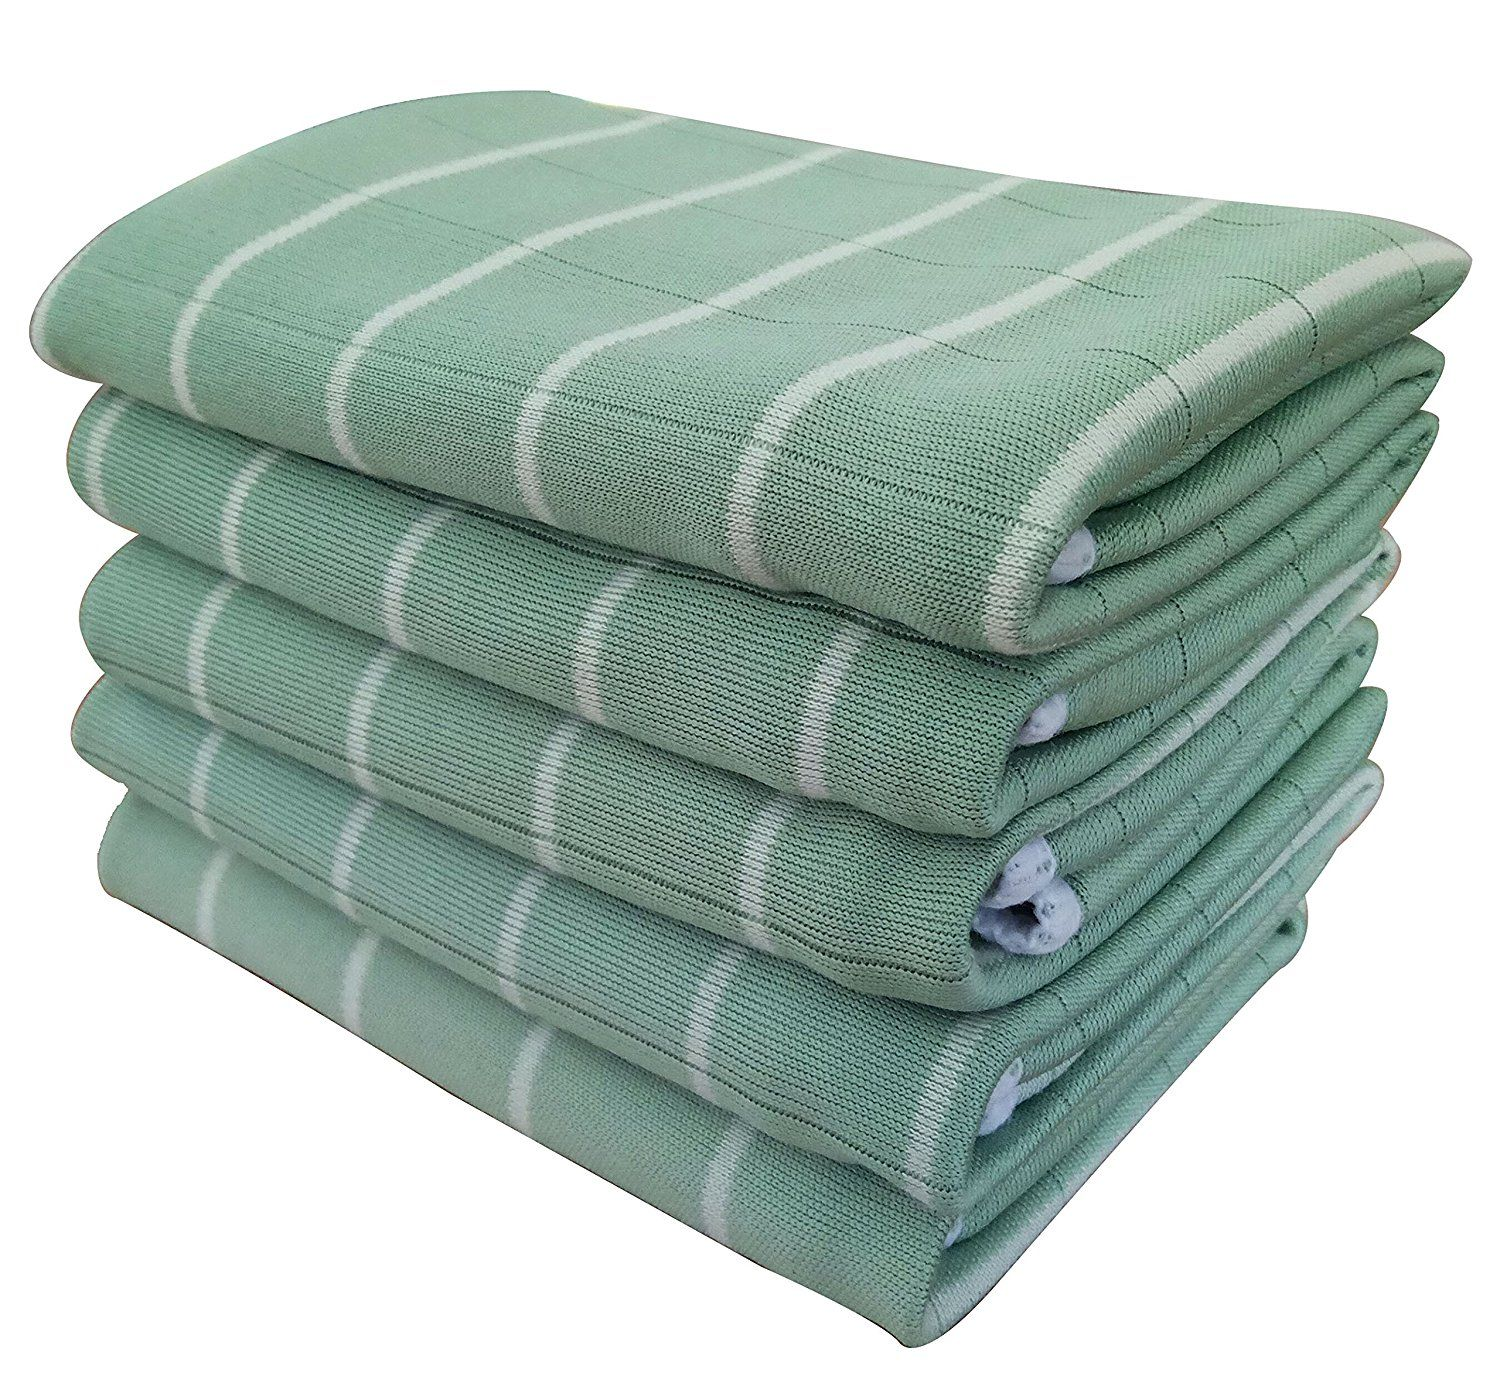 Gryeer Highly Absorbent Lint Free Kitchen Dish Towels Amazon